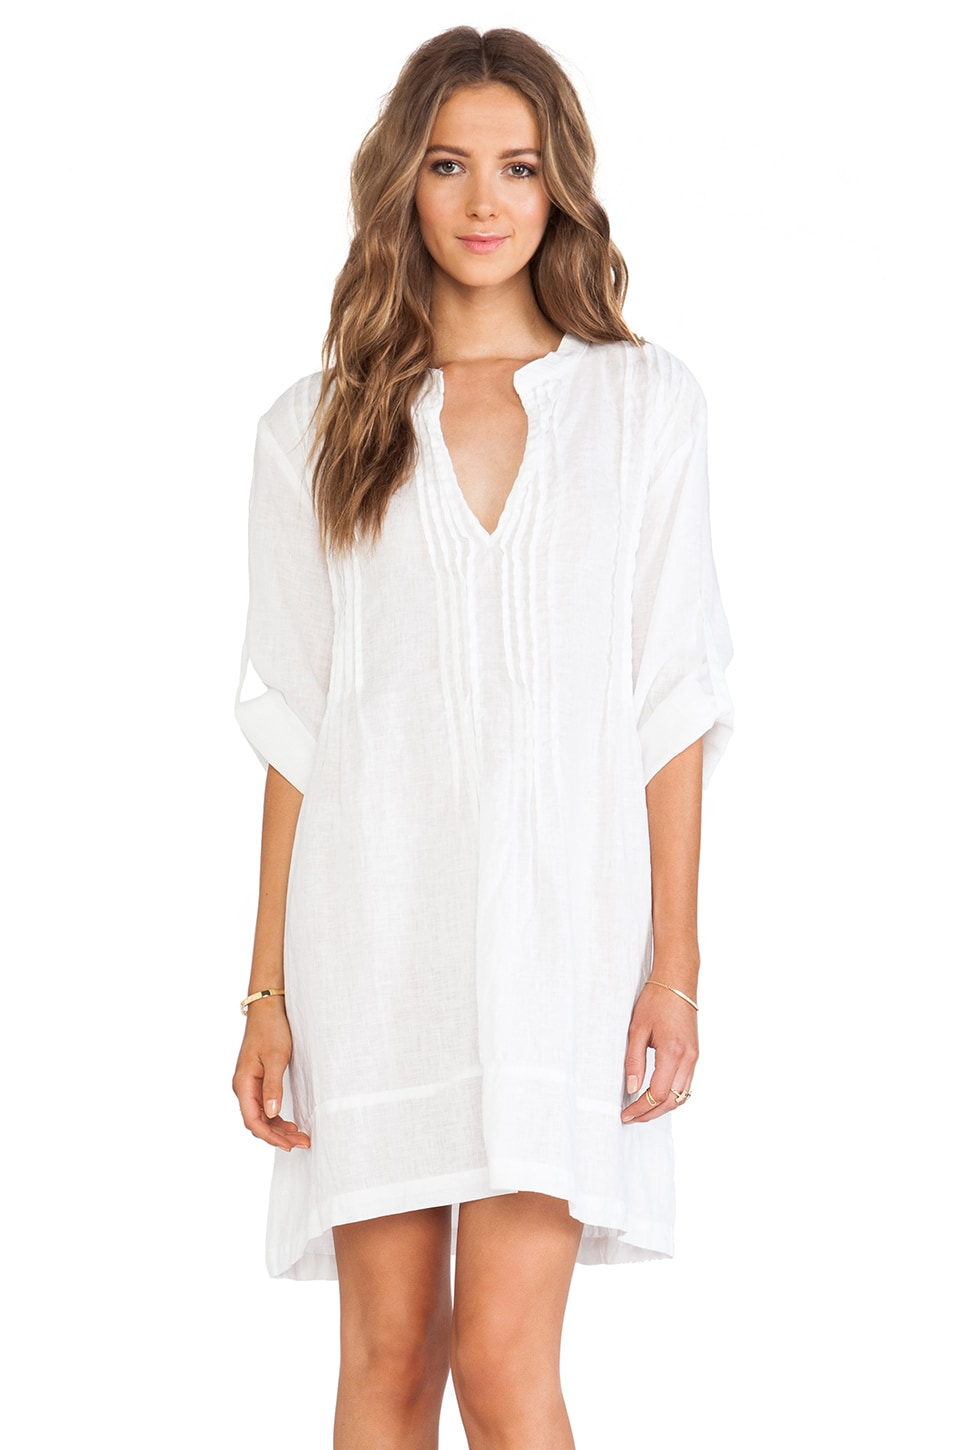 CP SHADES Regina Tunic Dress in White